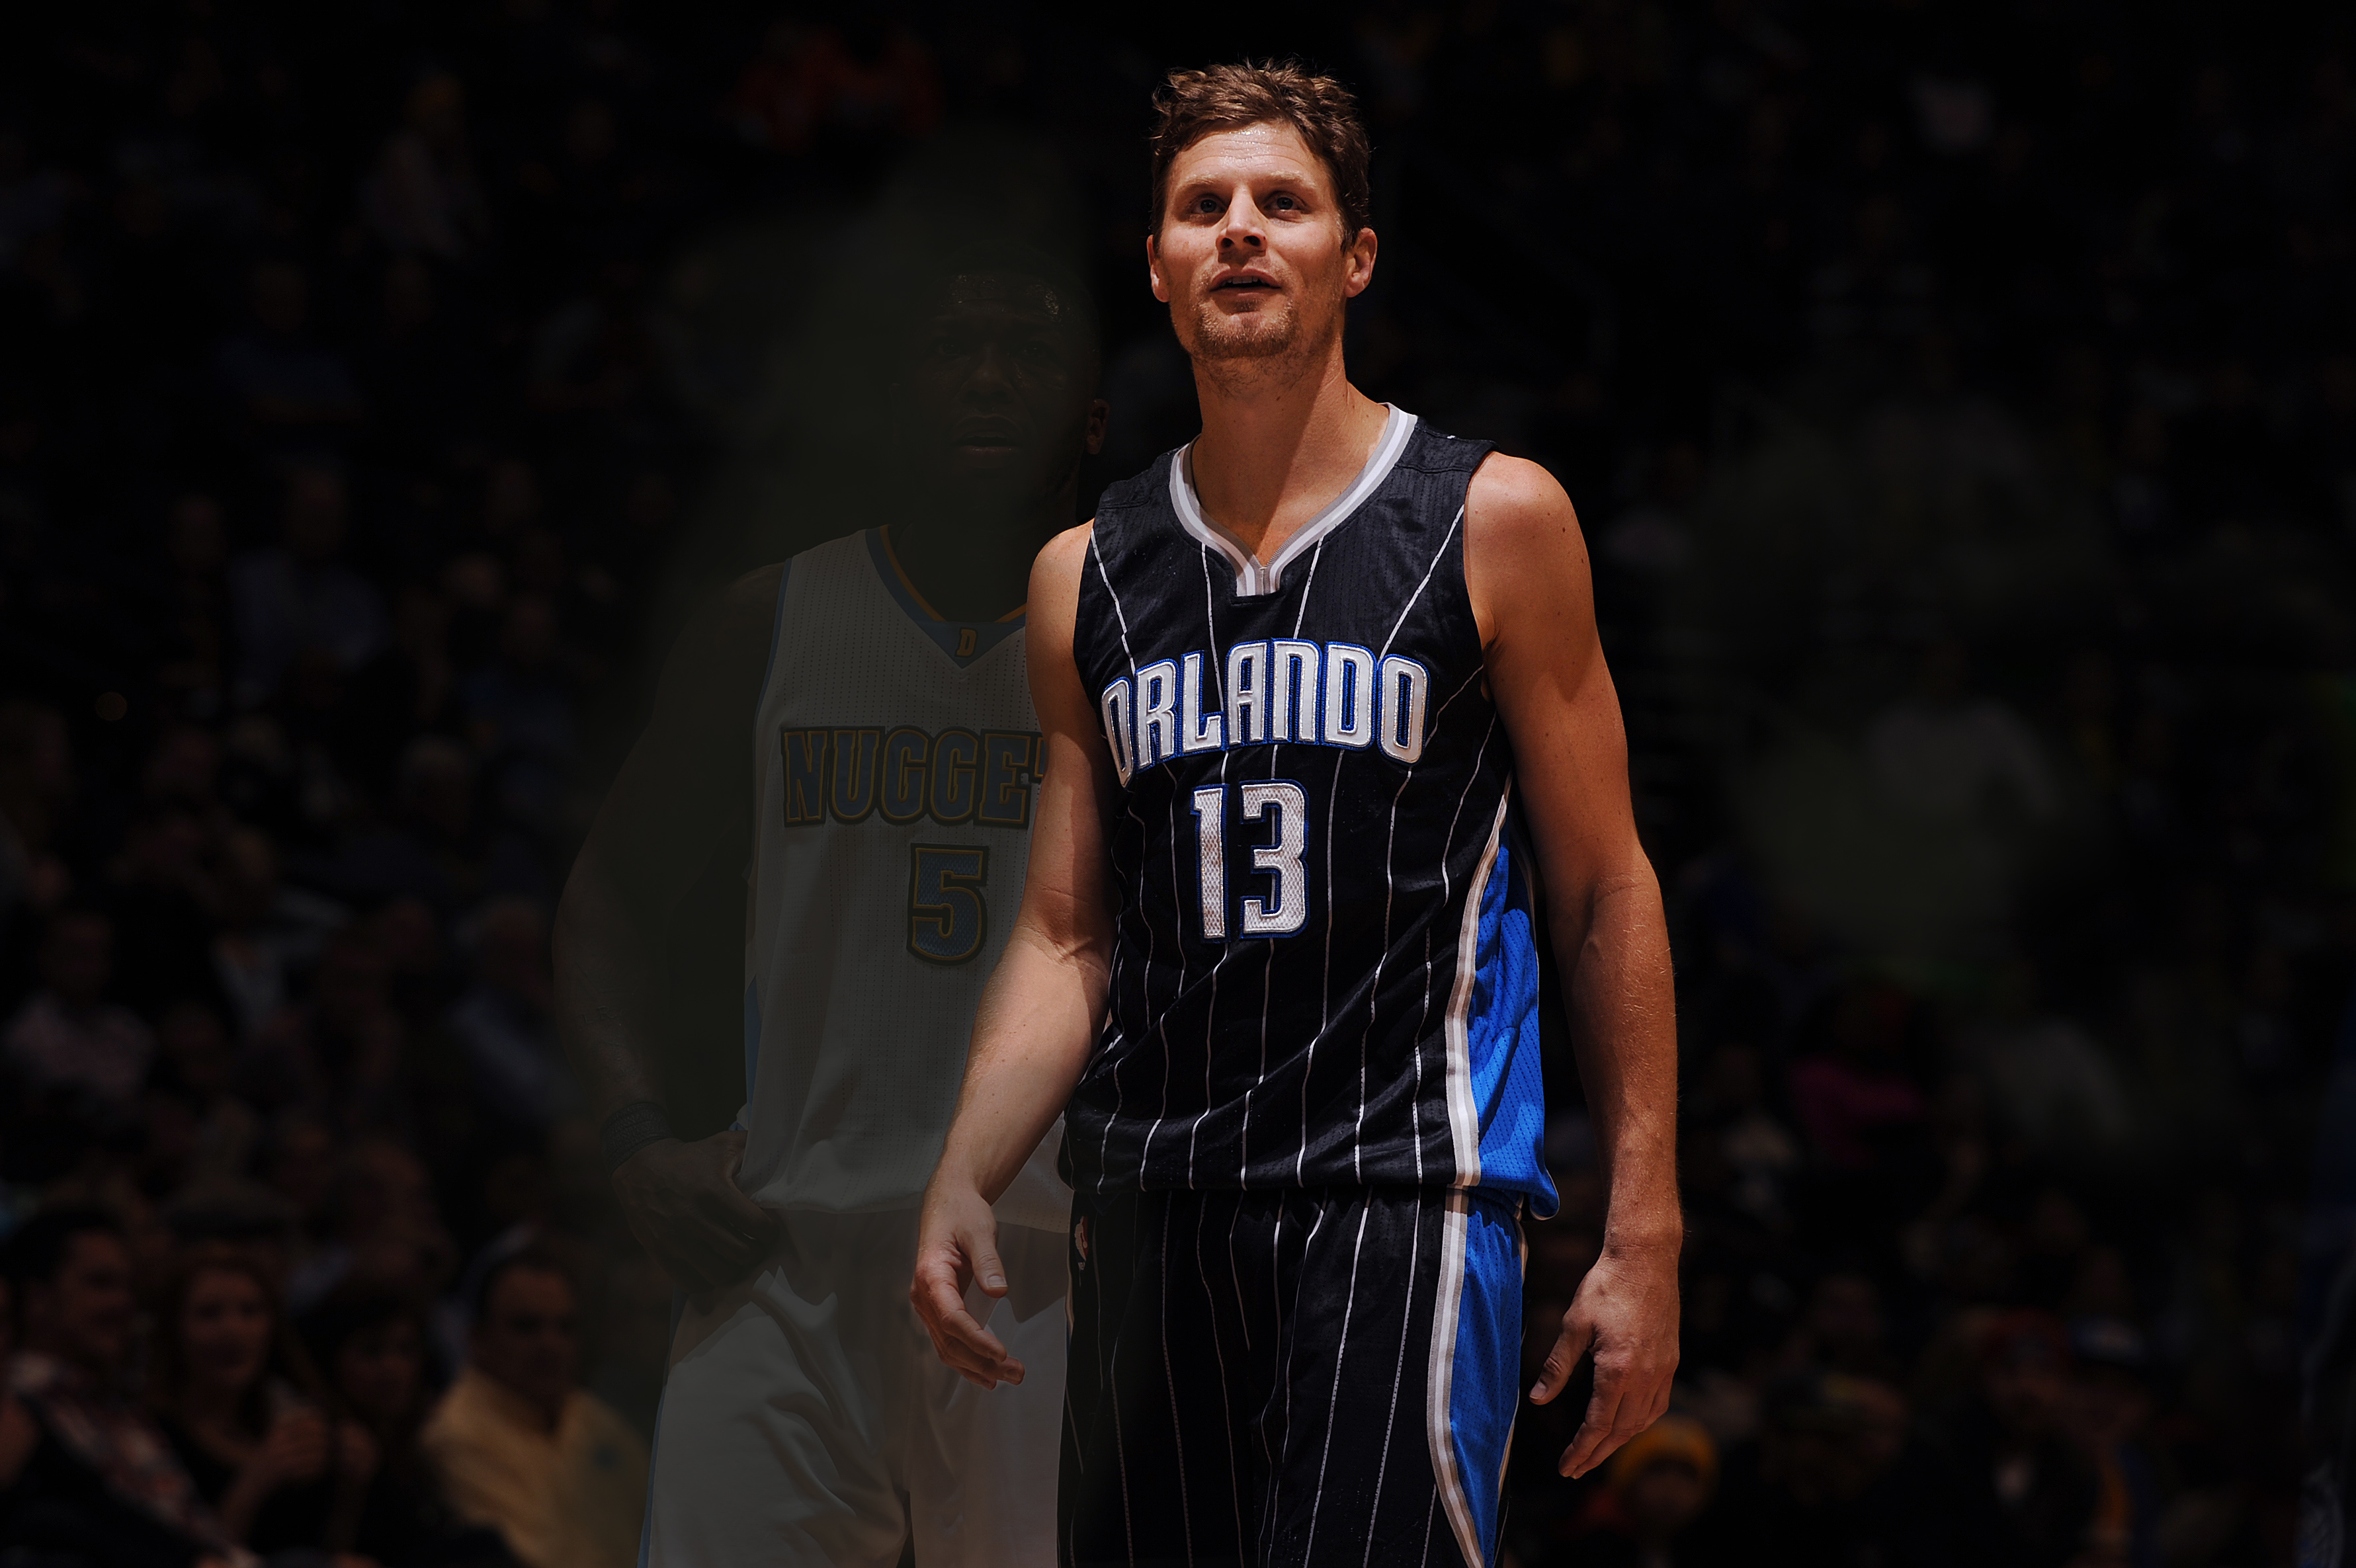 A Quick Q&A With Luke Ridnour, Who May Have Just Been Traded Again